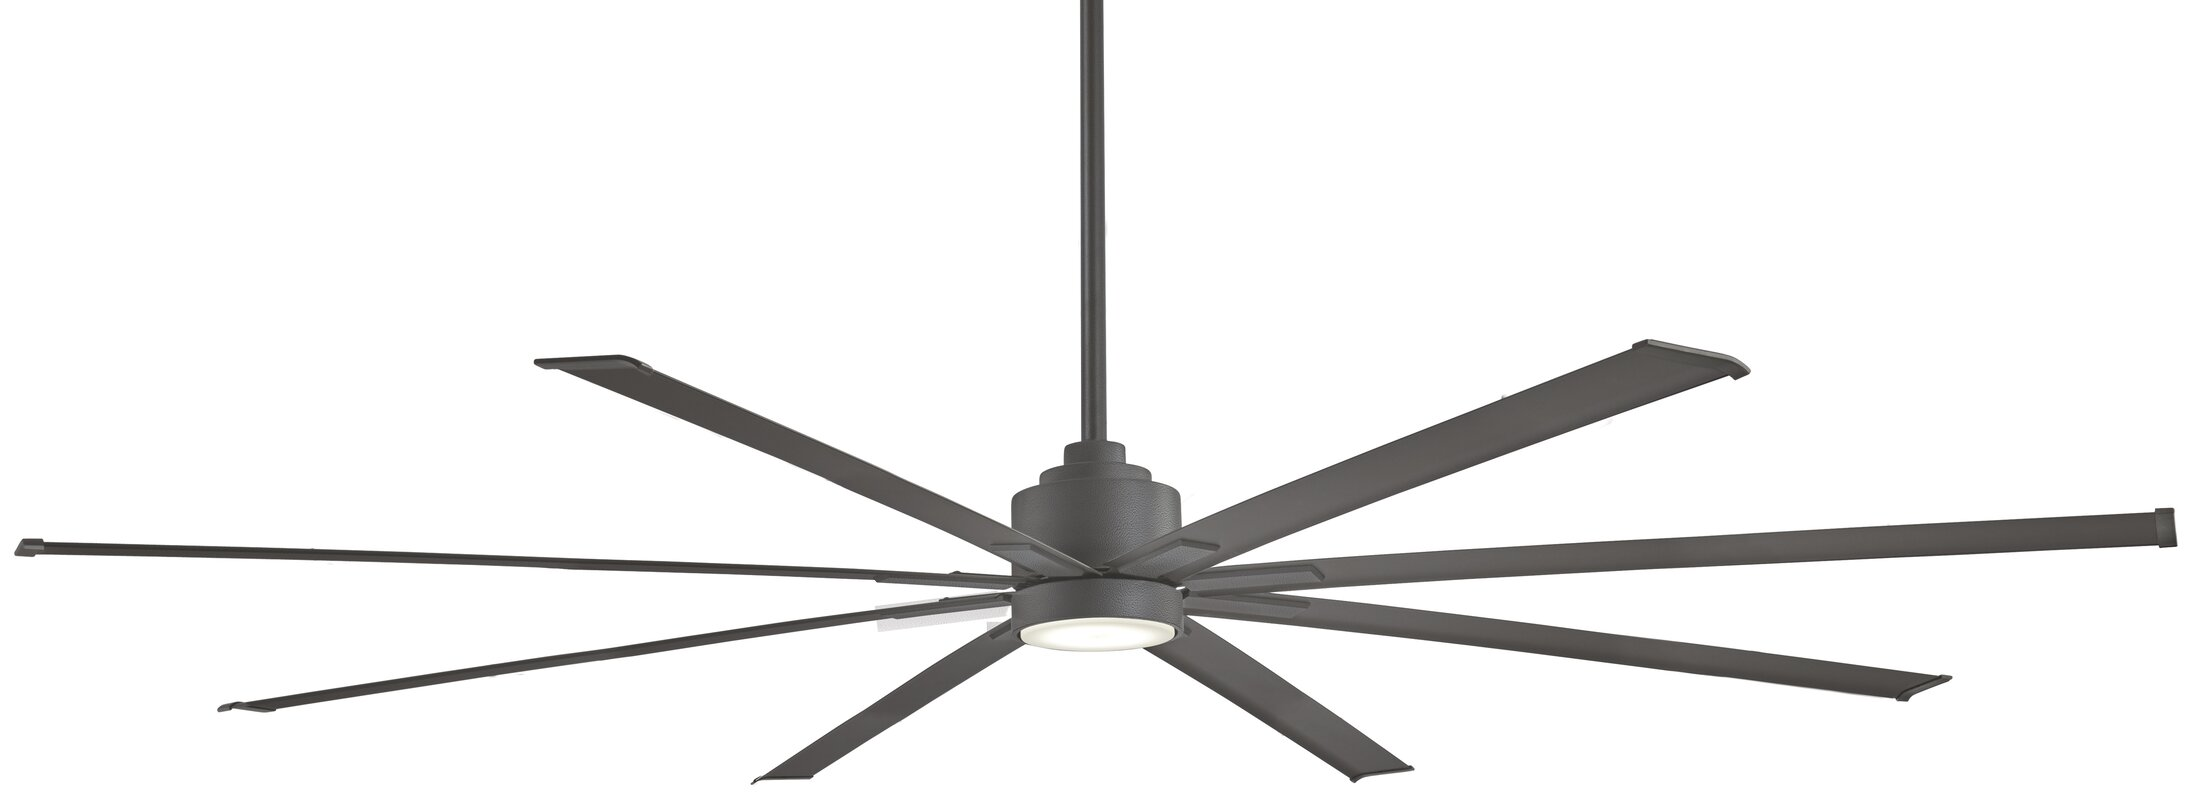 84 xtreme 8 outdoor ceiling fan with remote reviews allmodern 84 xtreme 8 outdoor ceiling fan with remote aloadofball Choice Image